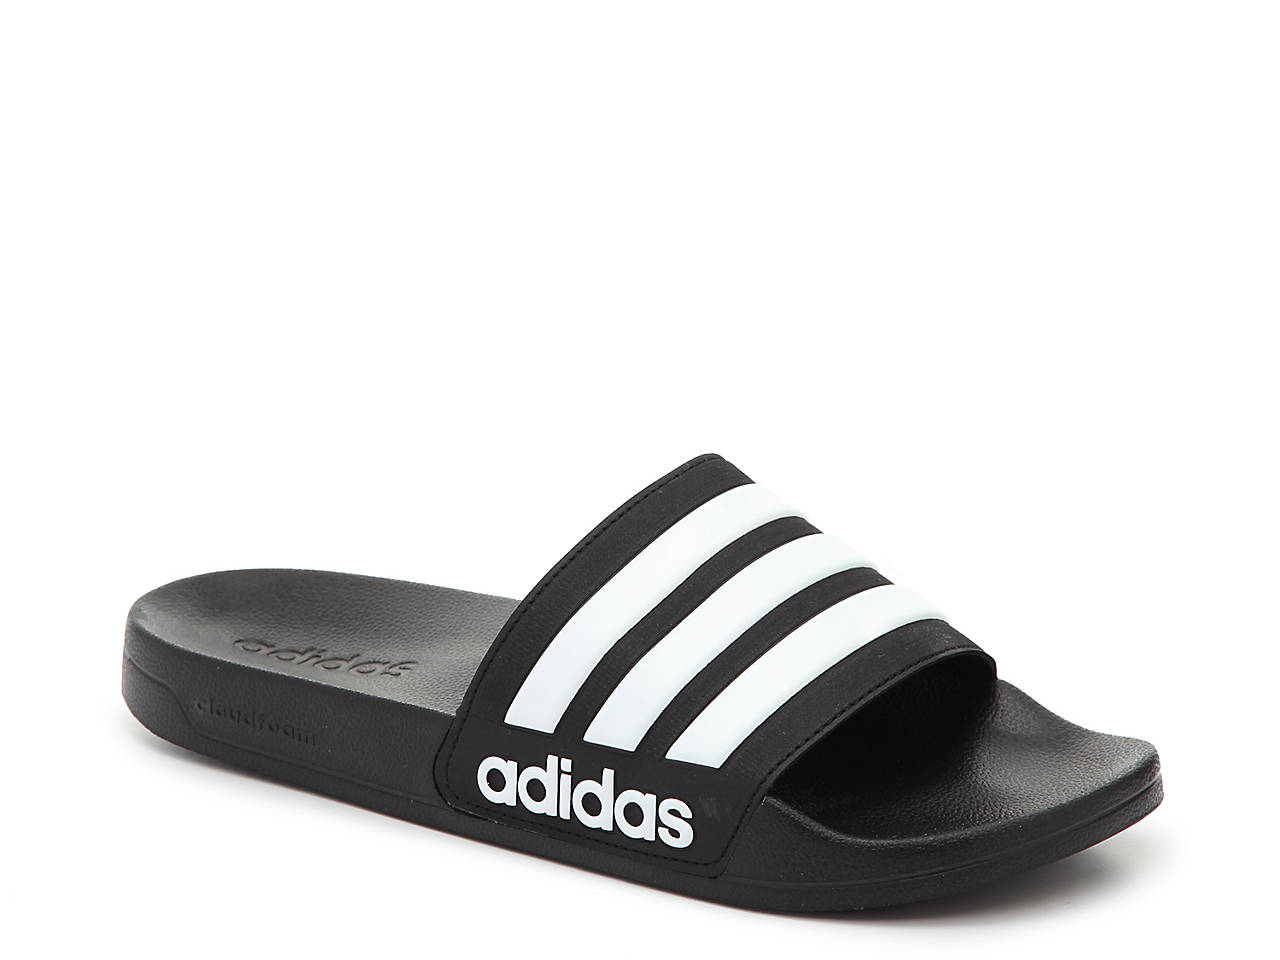 eb7952d0e5 adidas Adilette Shower Slide Sandal - Men s Men s Shoes